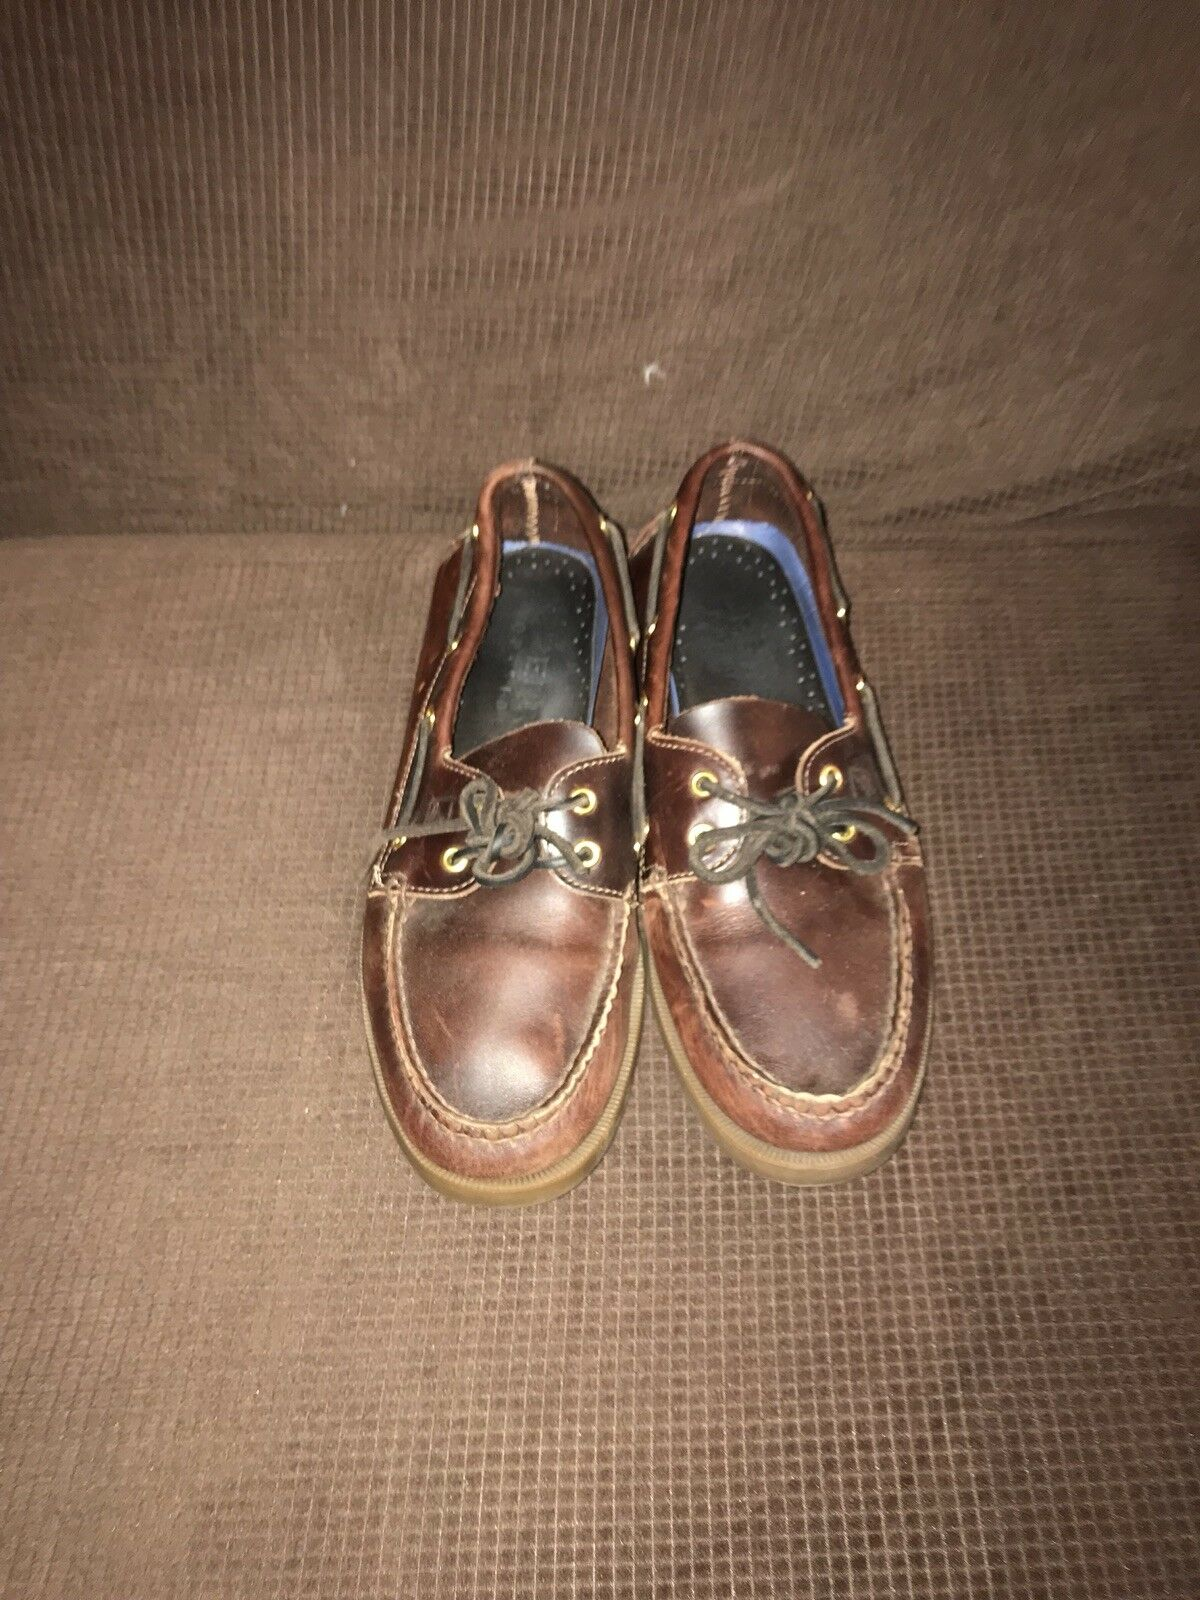 Haut Coupe Chaussures Brun Bateau Sider 5 9 Or De Sperry Cuir dBxwPdUqn